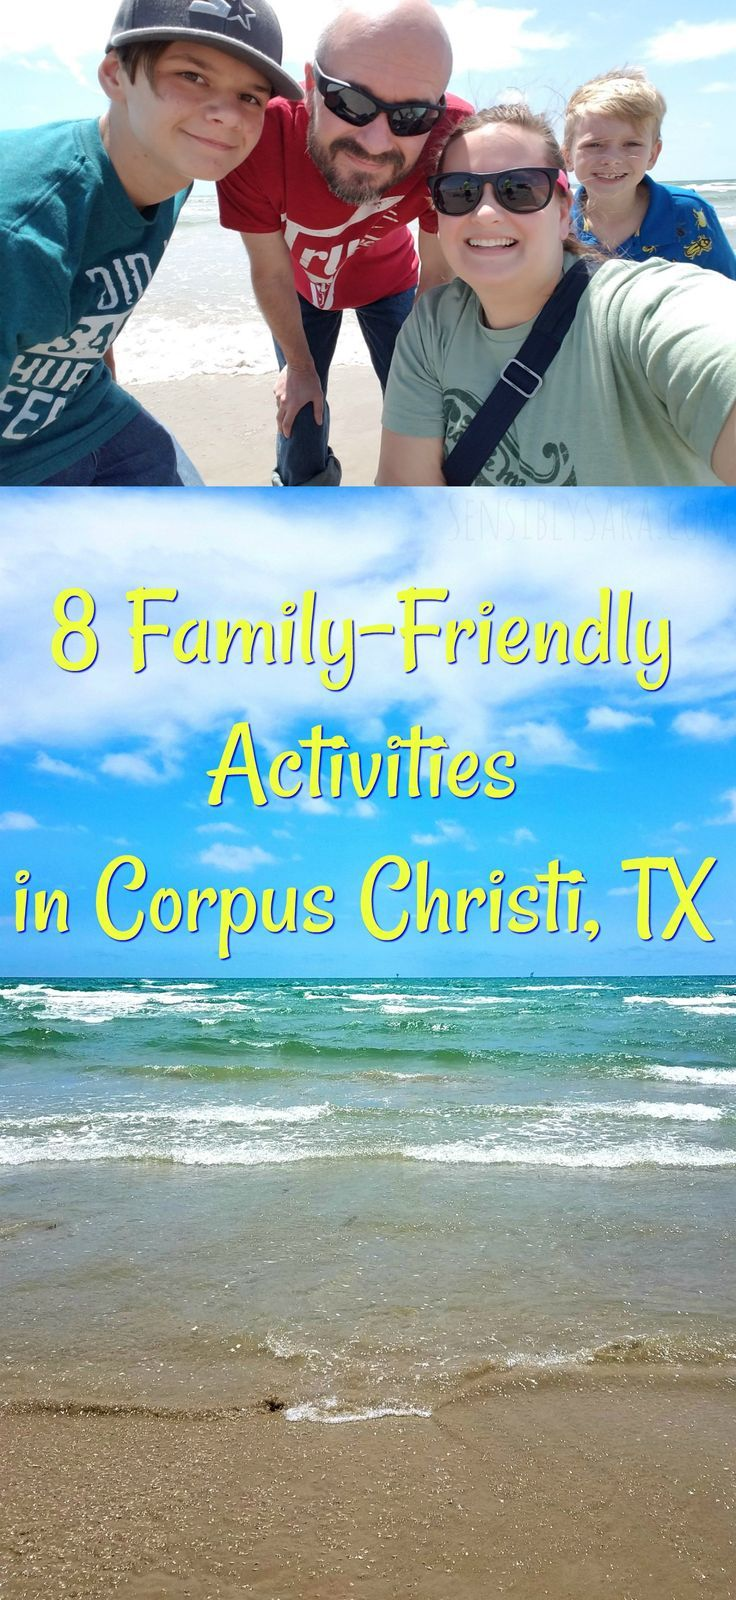 Family-Friendly Activities in Corpus Christi, TX [ad] #seecc | SensiblySara.com